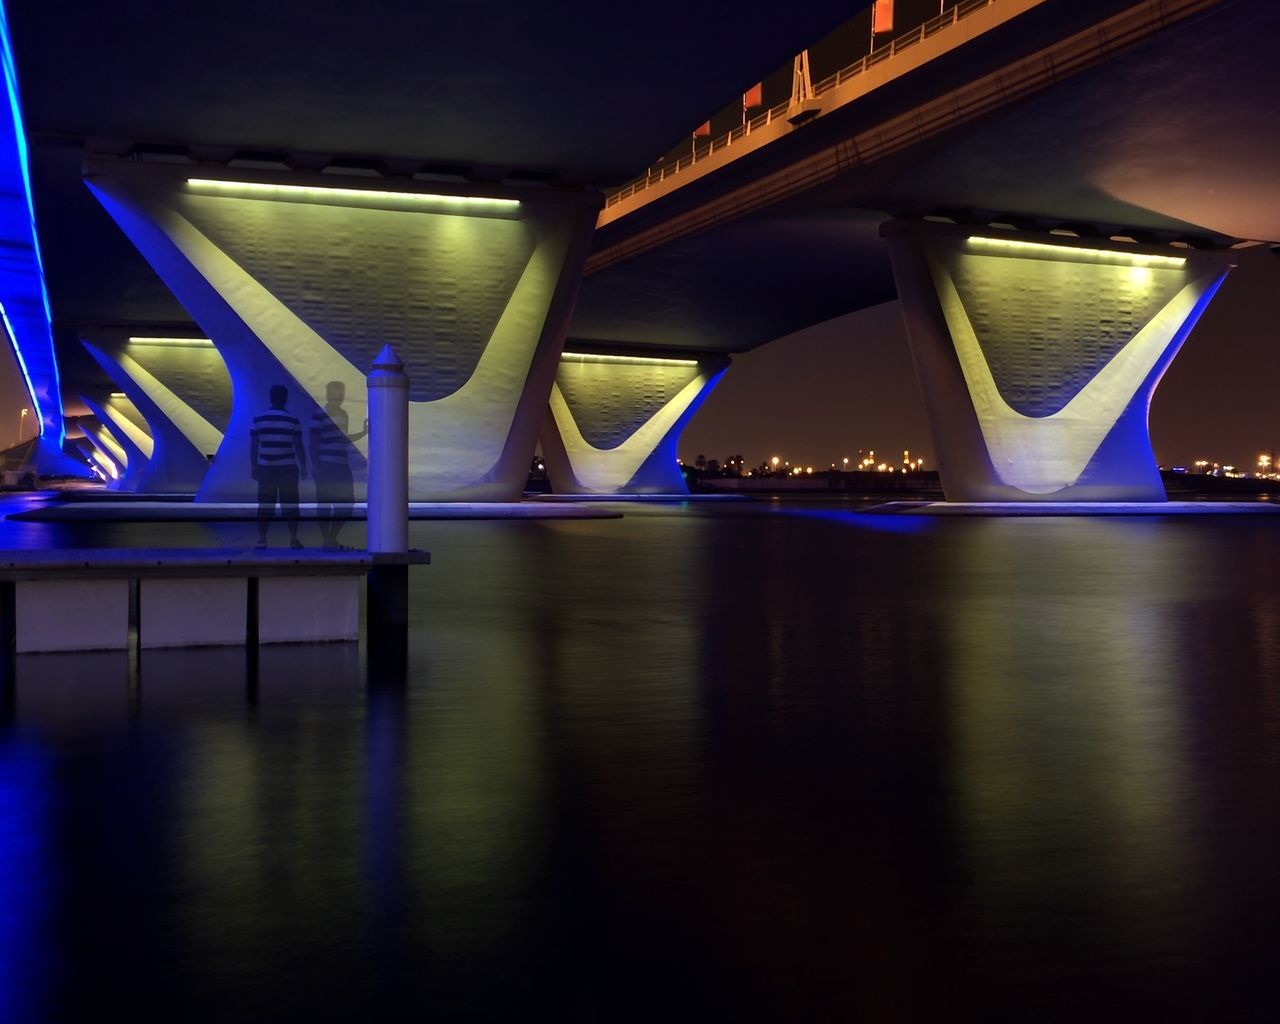 illuminated, bridge - man made structure, architecture, night, lighting equipment, connection, built structure, reflection, transportation, no people, waterfront, water, architectural column, indoors, modern, city